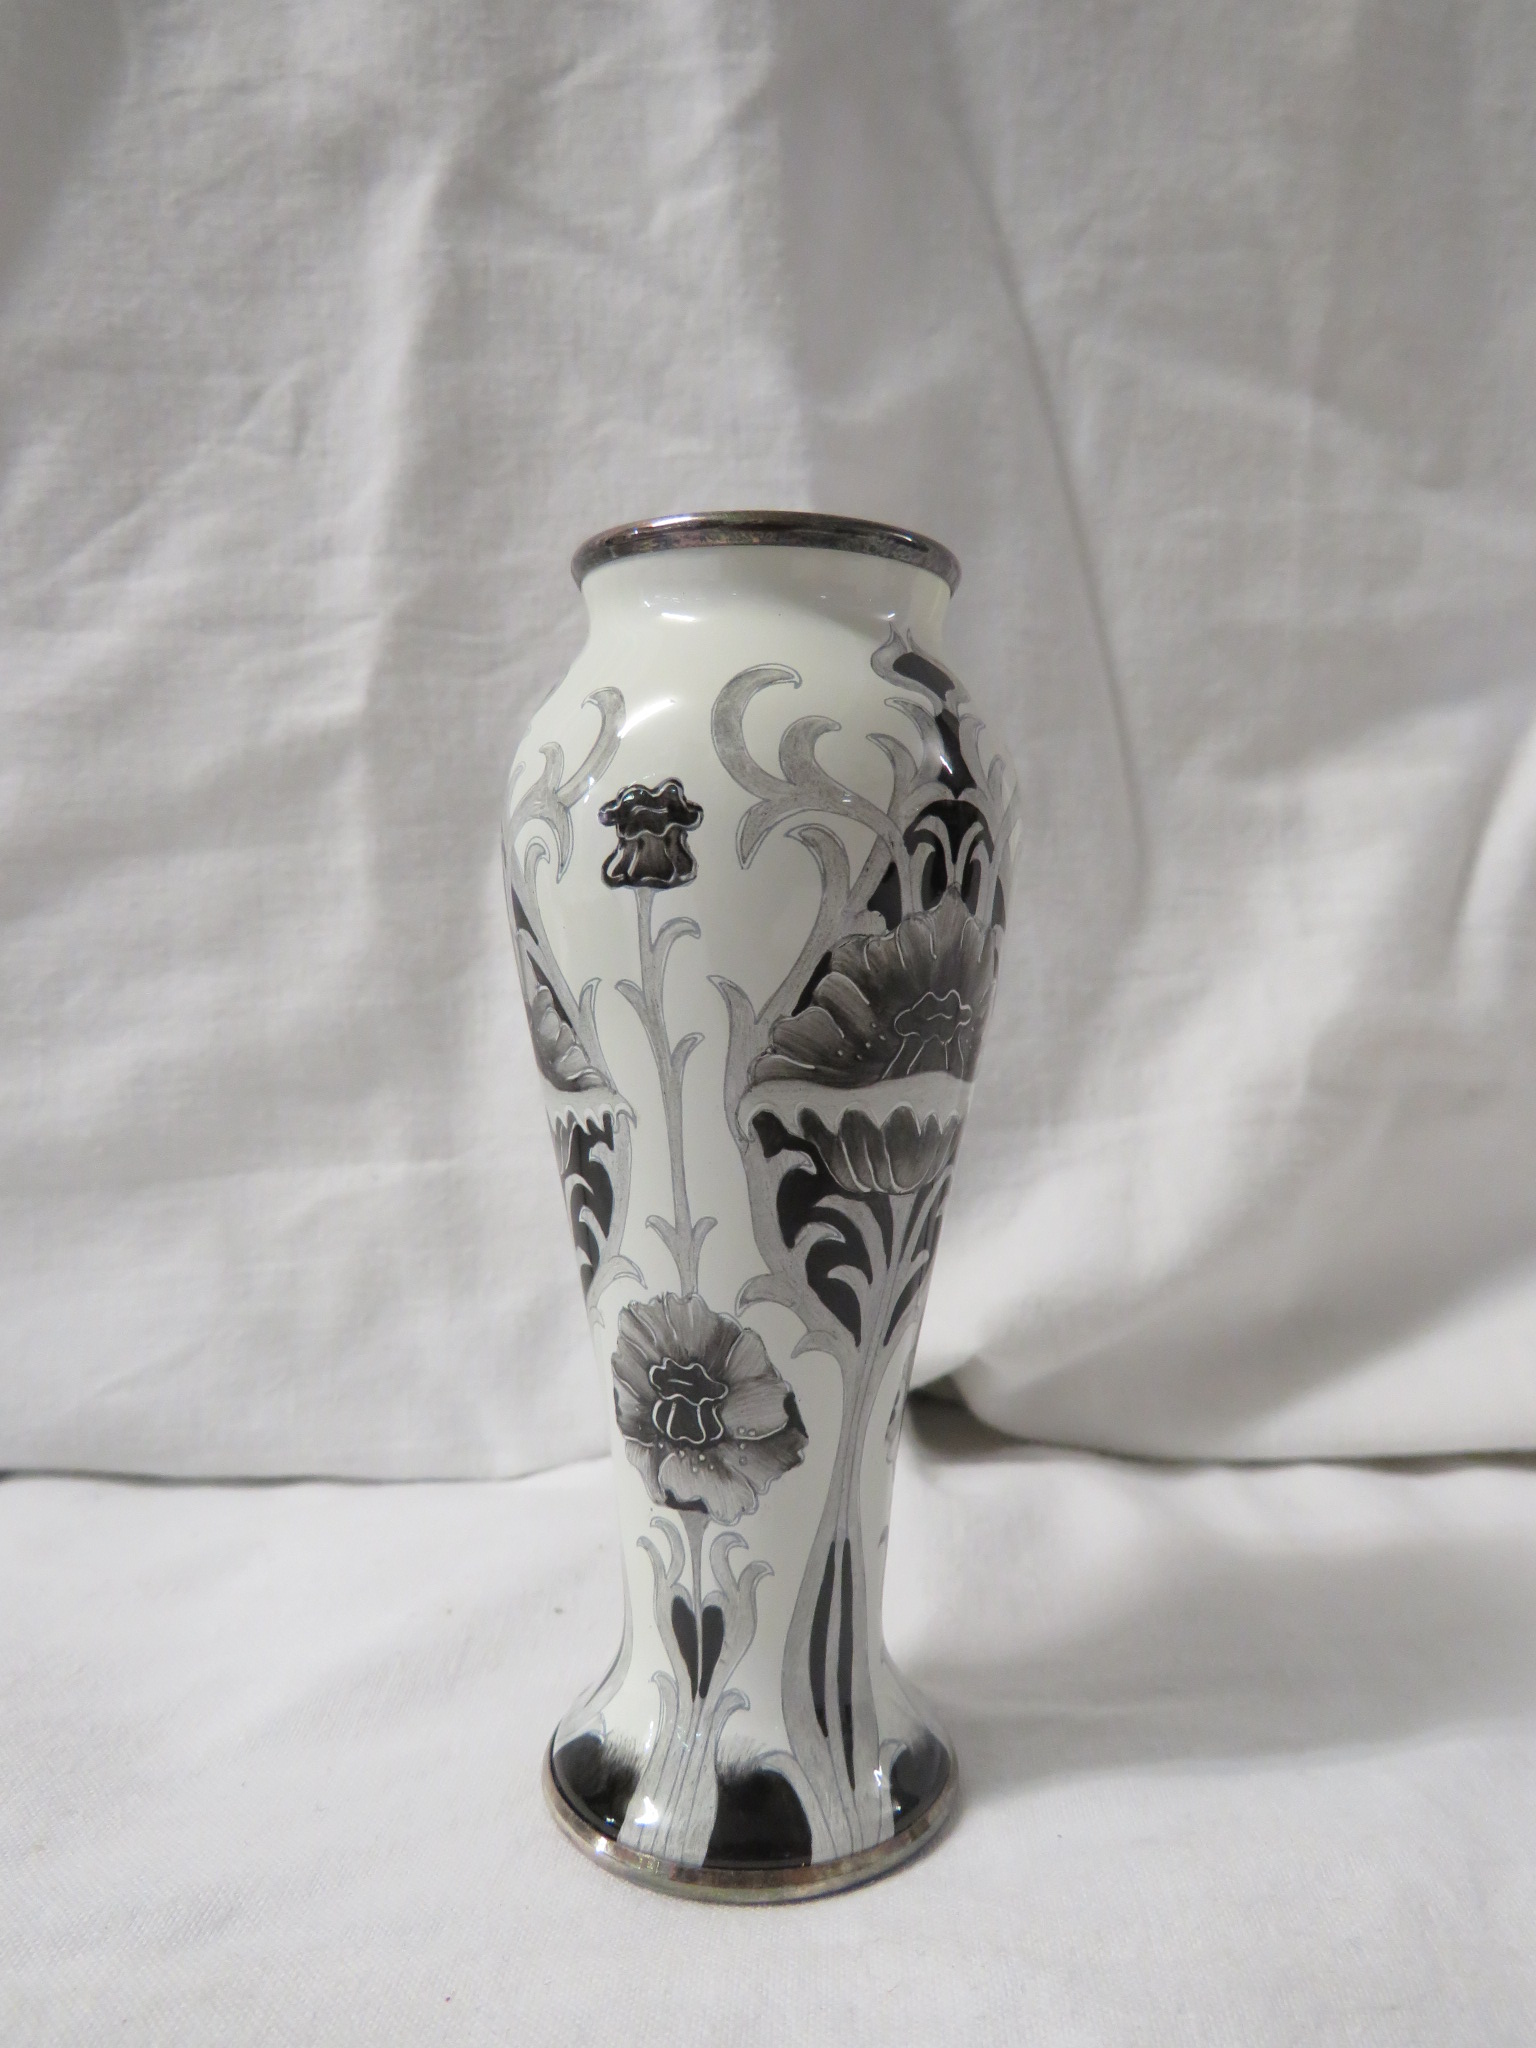 Moorcroft enamel Black Poppy slender baluster vase, en grisaille stylized flowers and foliage, - Image 3 of 4